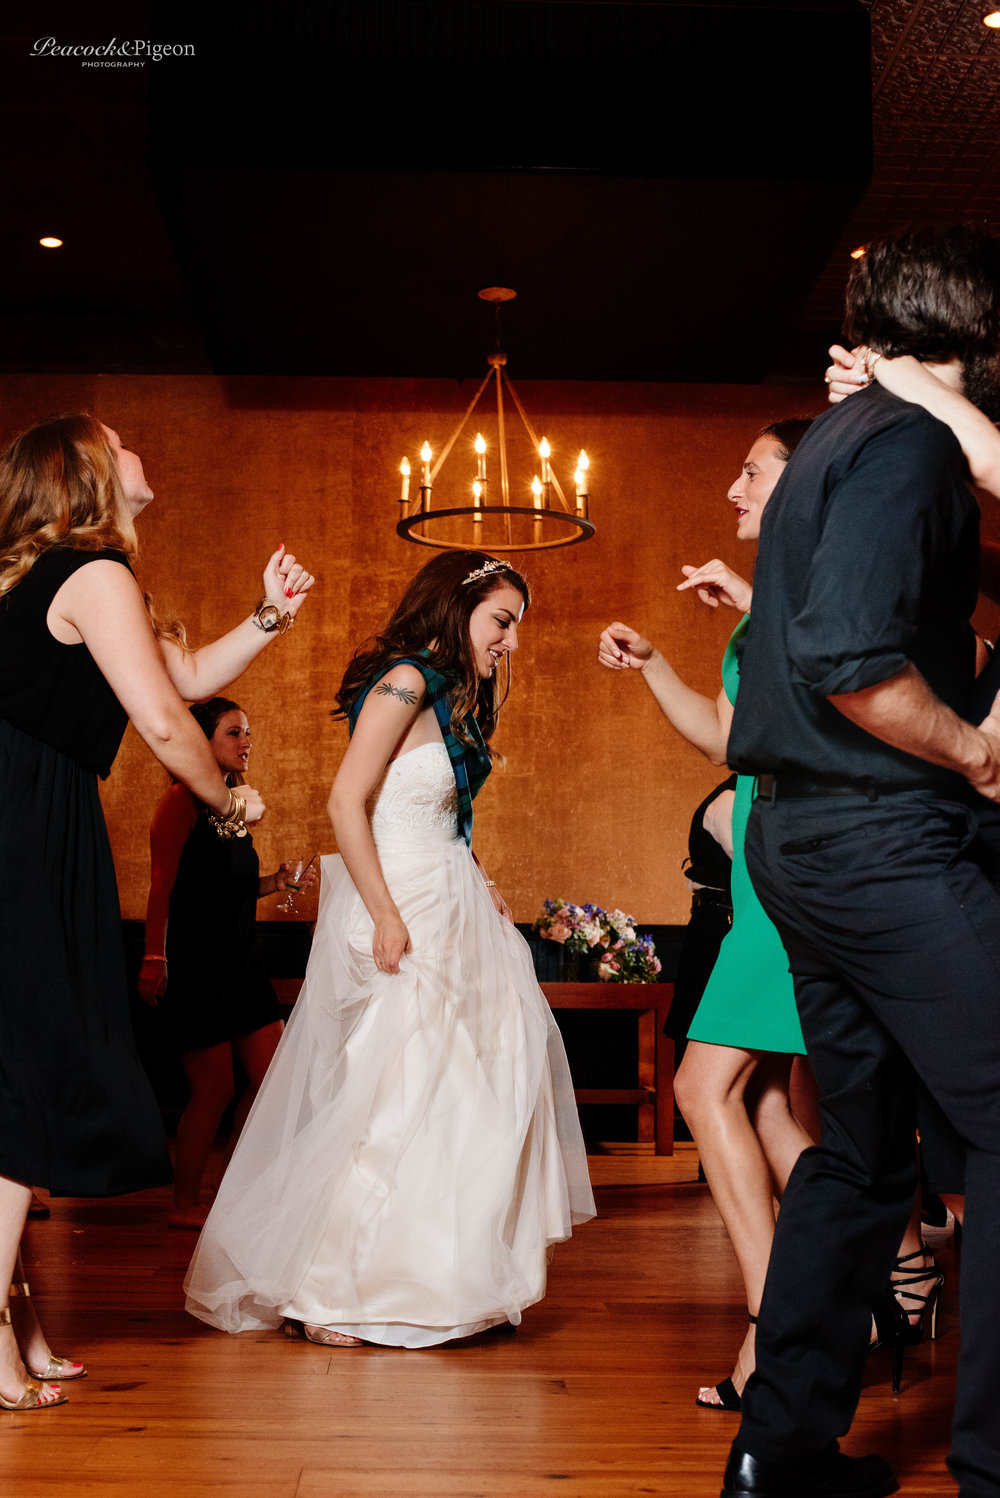 Callum_and_Sara's_Wedding_at_the_Cork_Factory_Hotel_in_Lancaster_Part_Eleven_Dancing_Continued_Watermarked-2.jpg